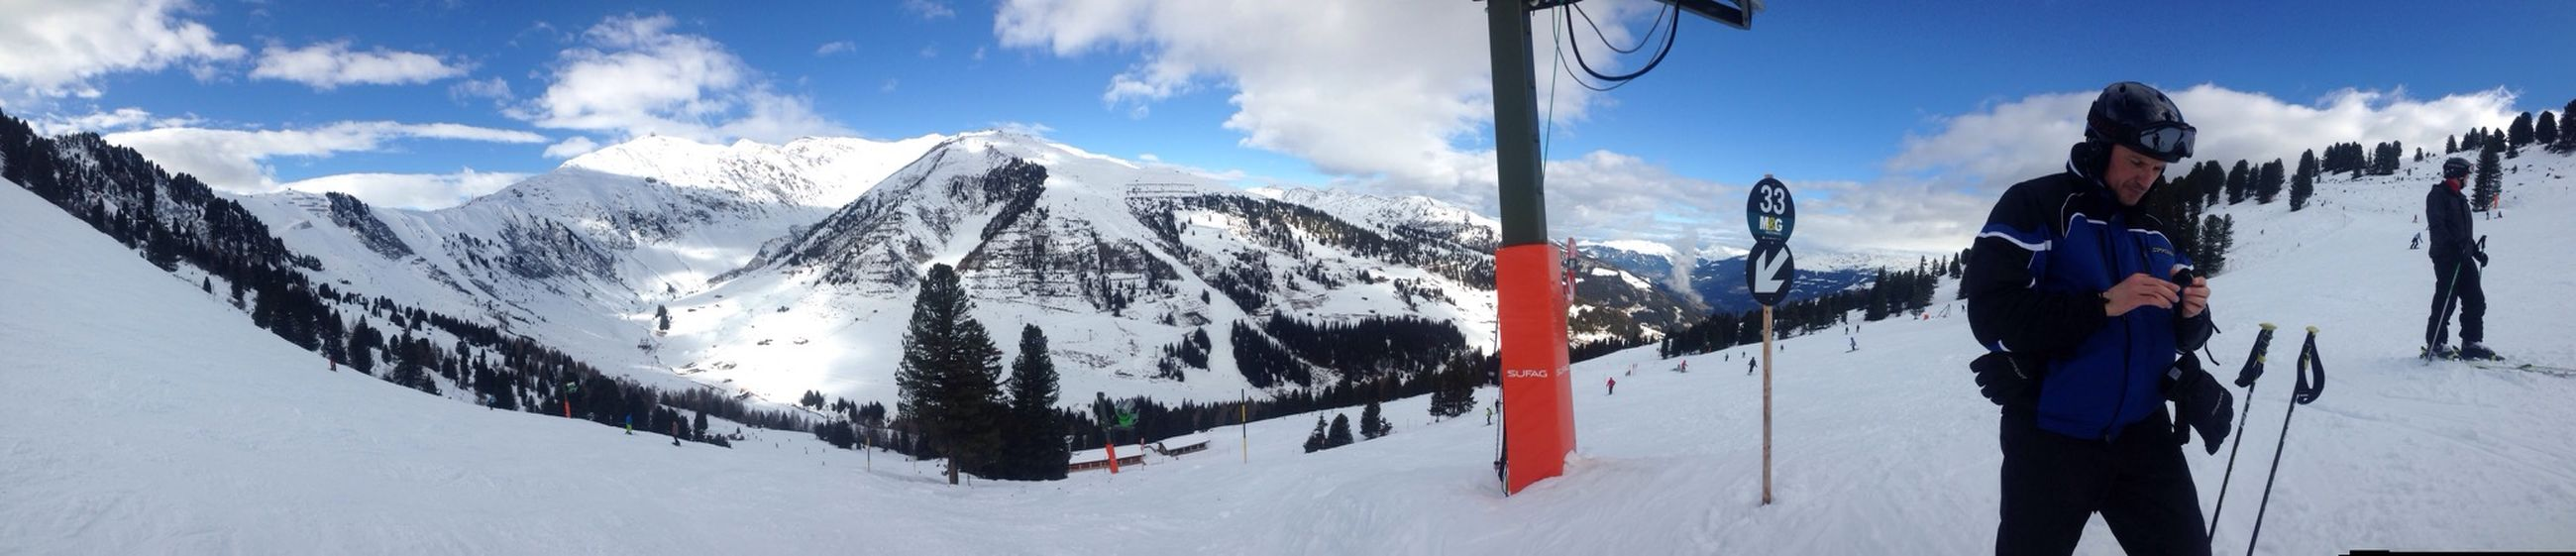 Nature Snow Winter Österreich Skiing Photooftheday Photography Panorama